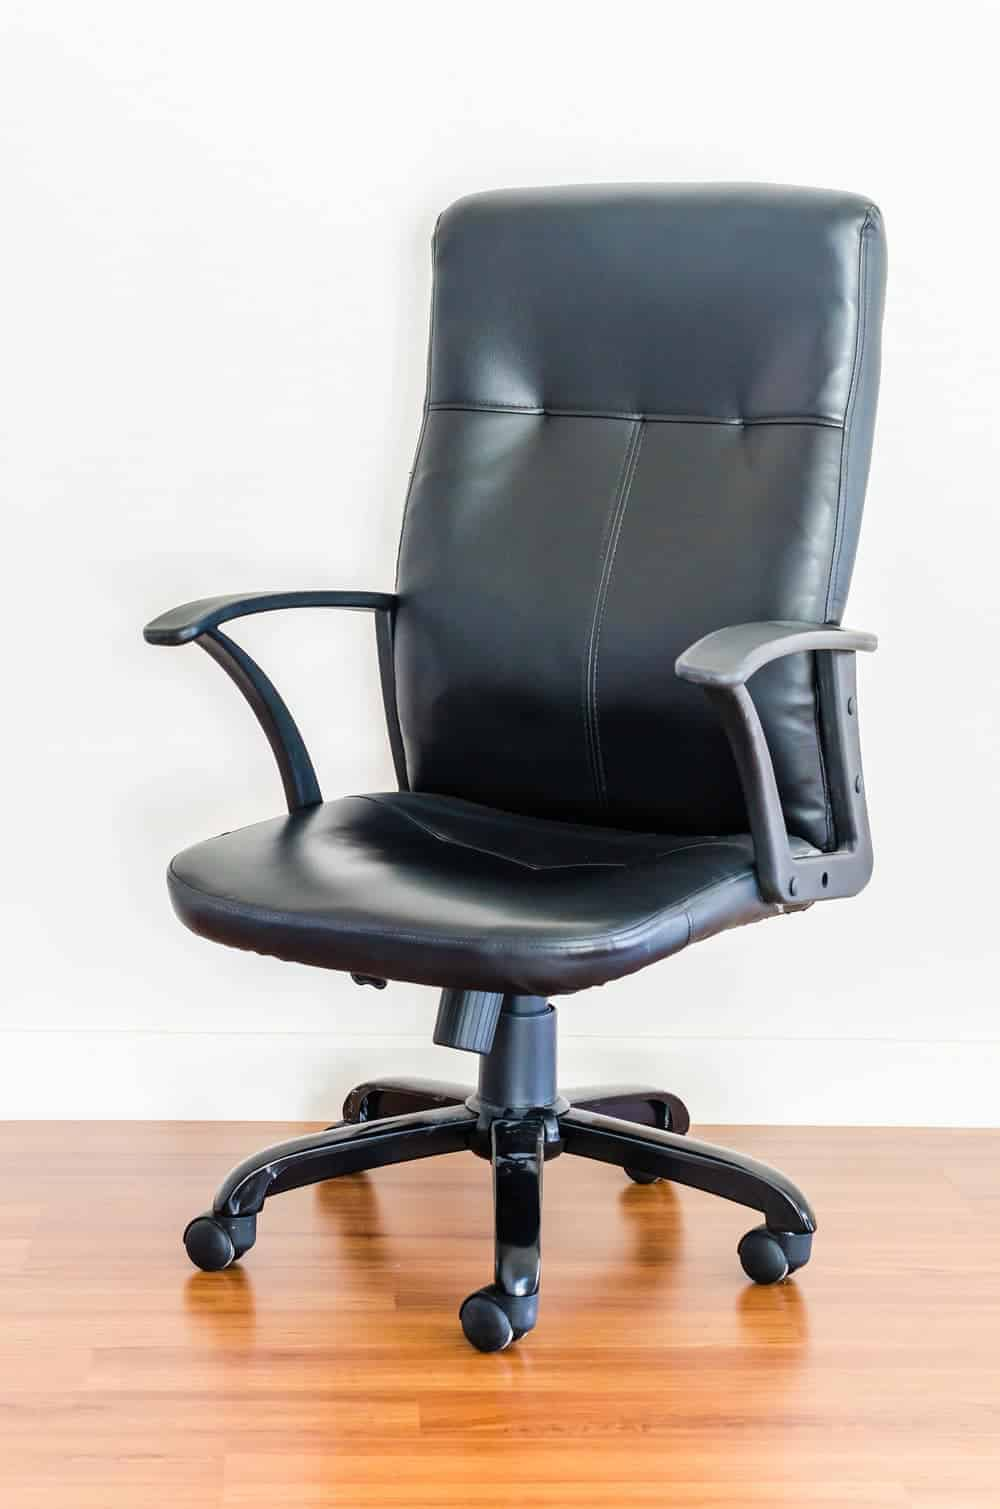 raise office chair without lever easy steps